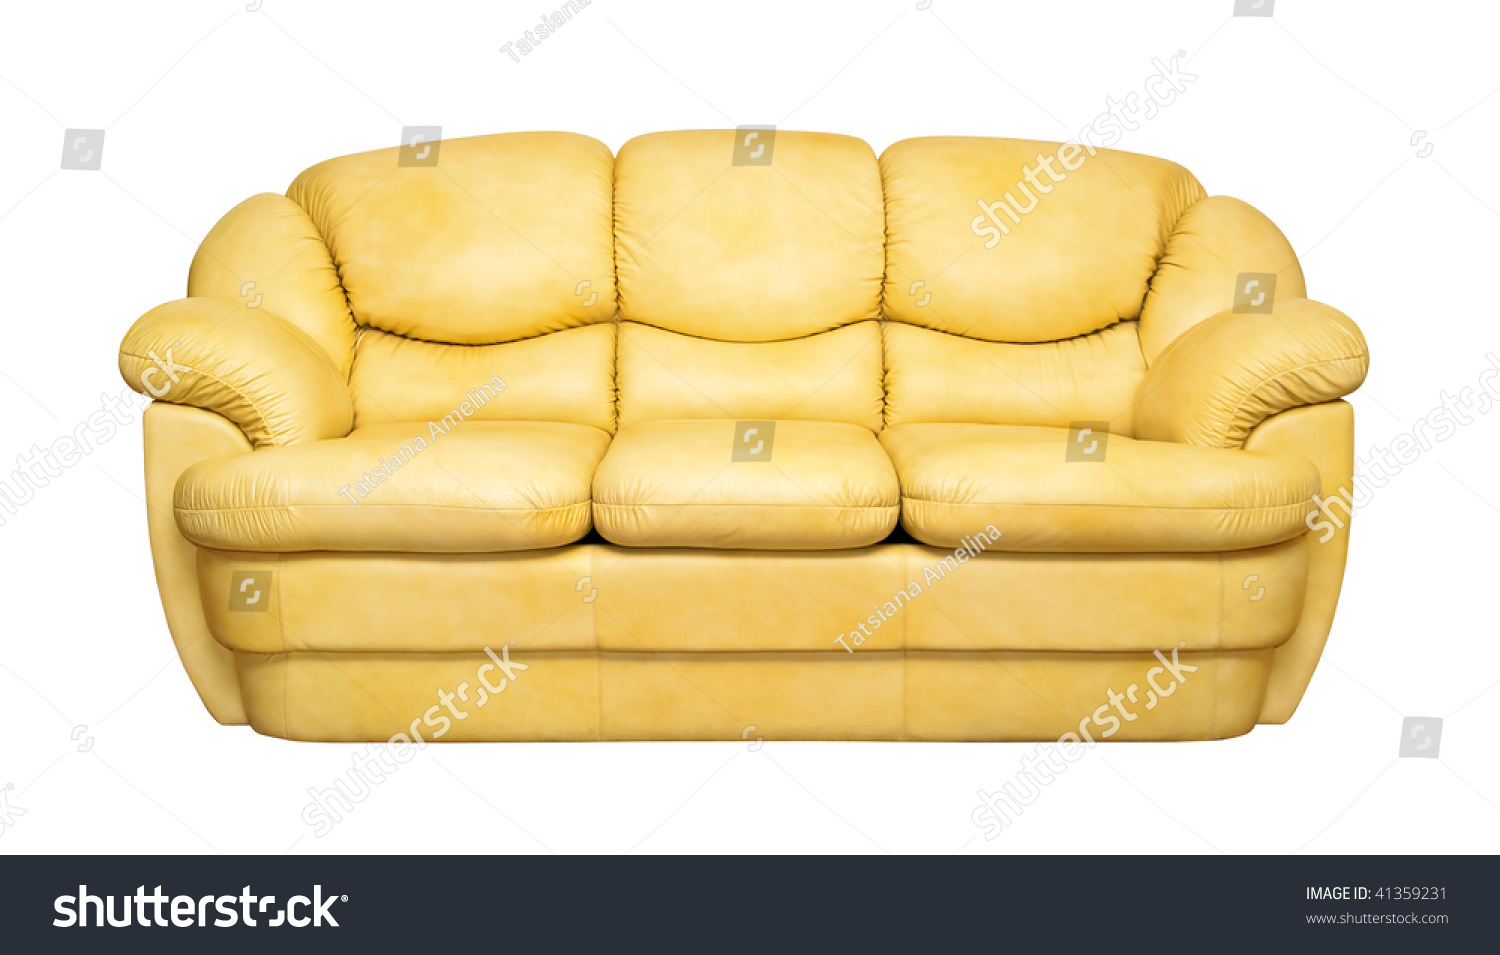 yellow leather sofa isolated on white stock photo edit now rh shutterstock com Designer Upholstery Fabric Upholstery Fabric Outlet